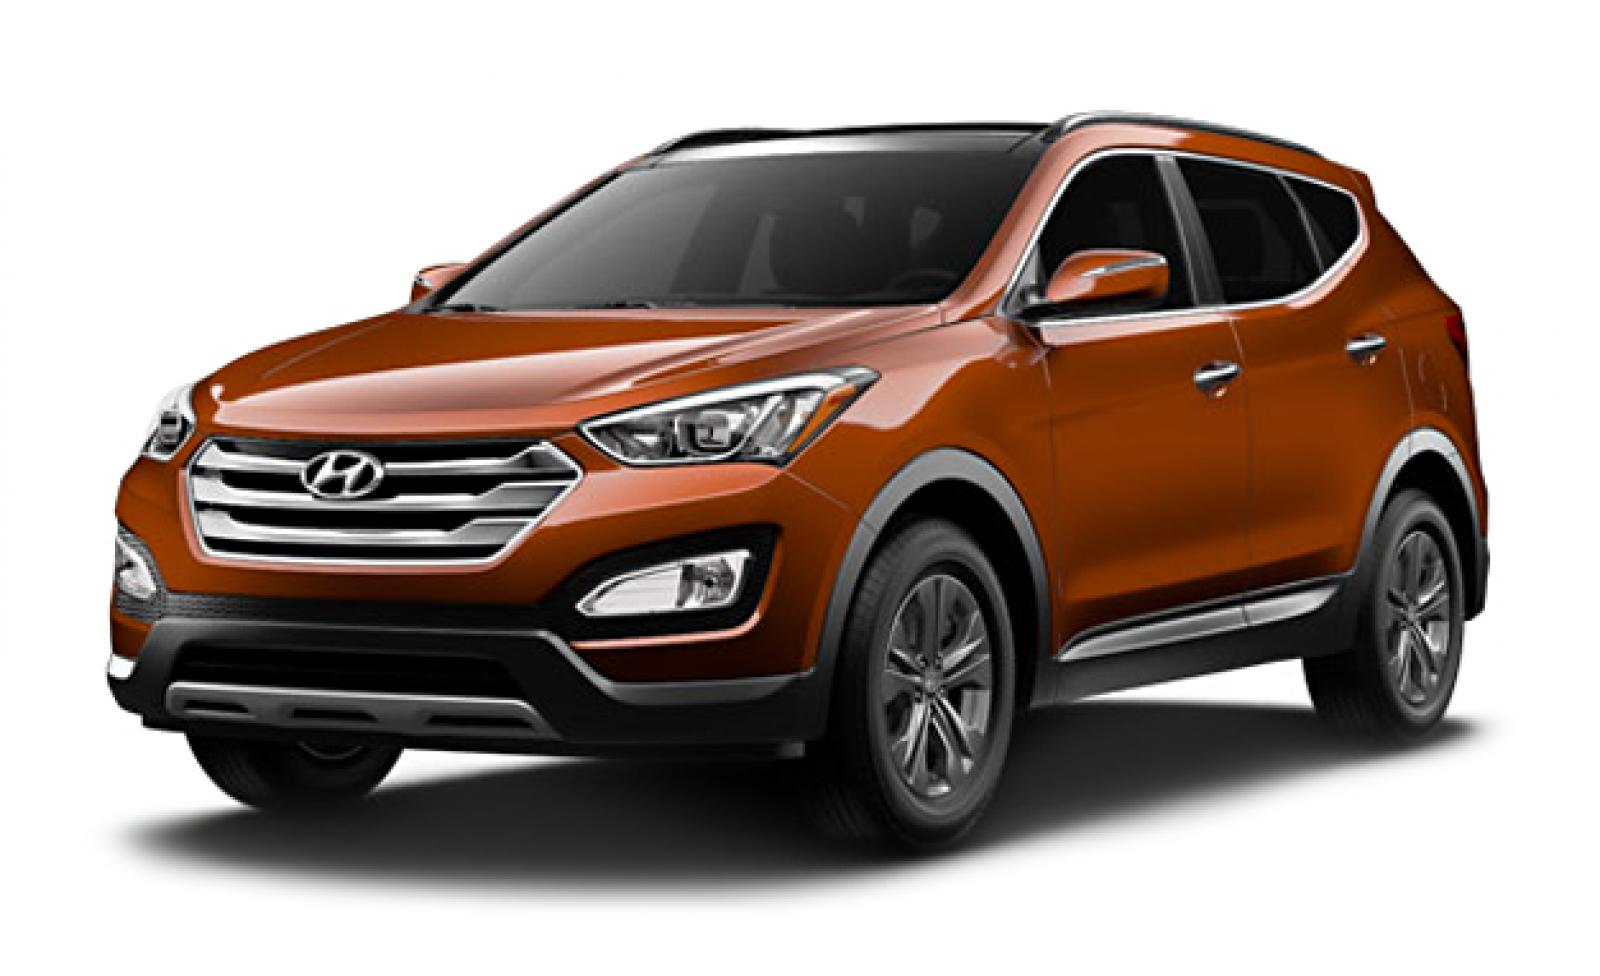 towing capacity of hyundai santa fe sport. Black Bedroom Furniture Sets. Home Design Ideas